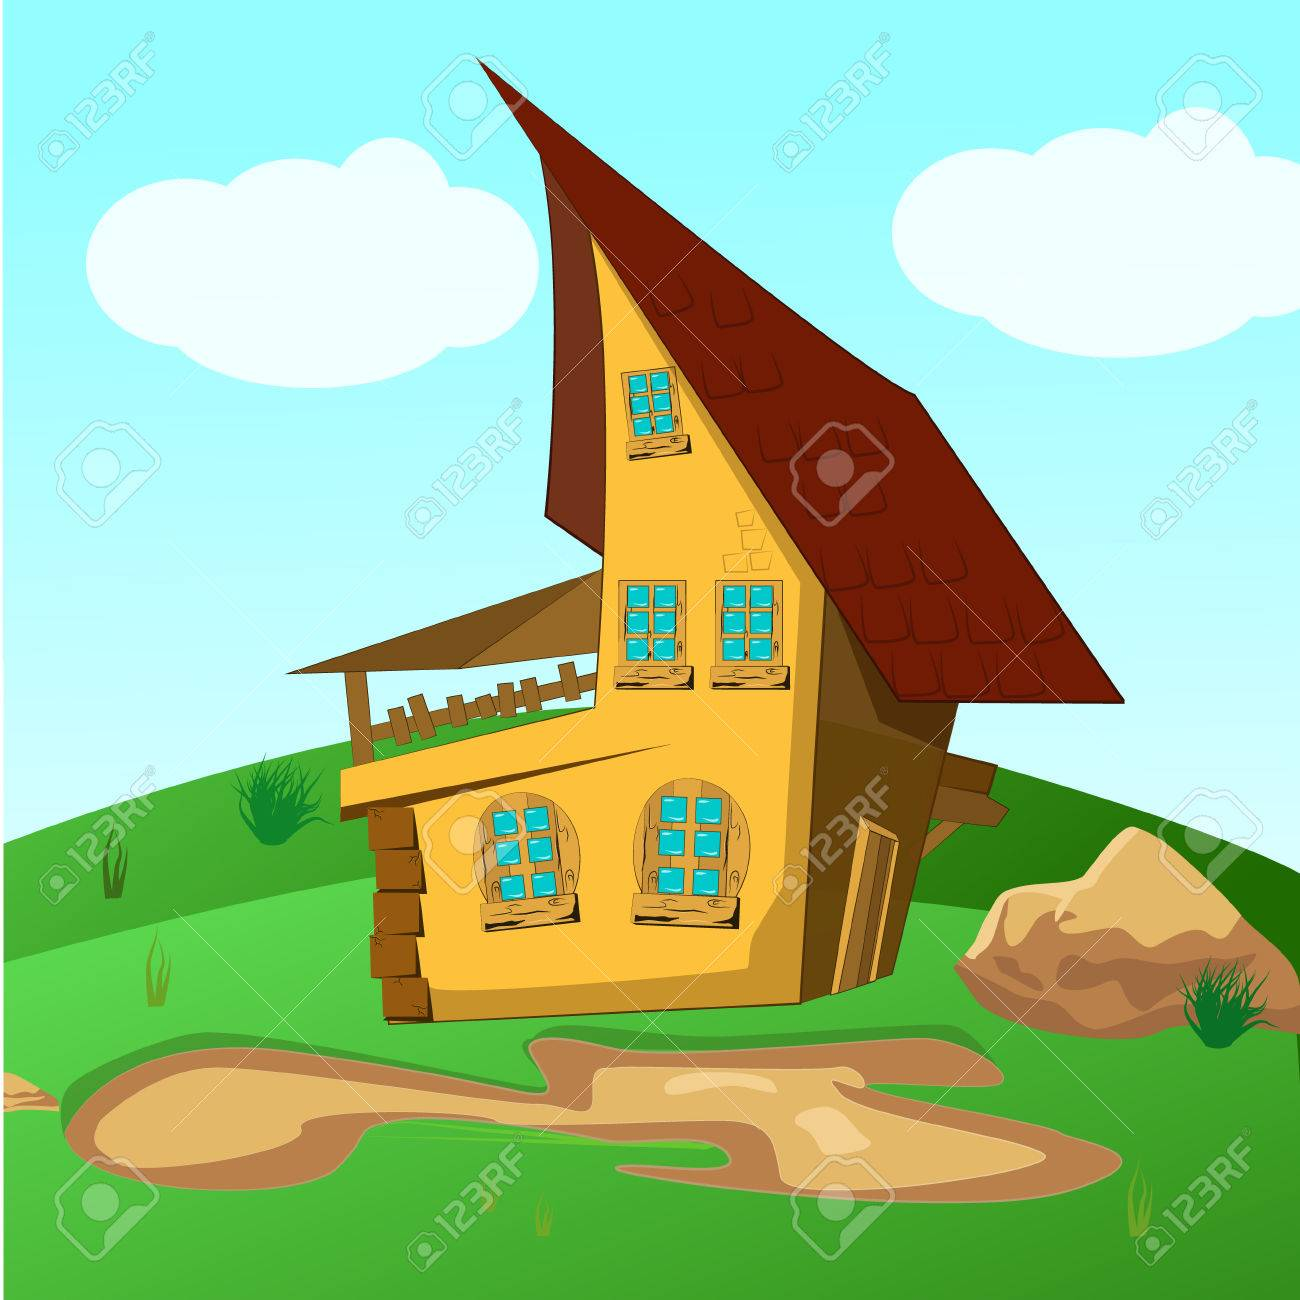 House inside green fields illustration of a cartoon house on a top of a hill in